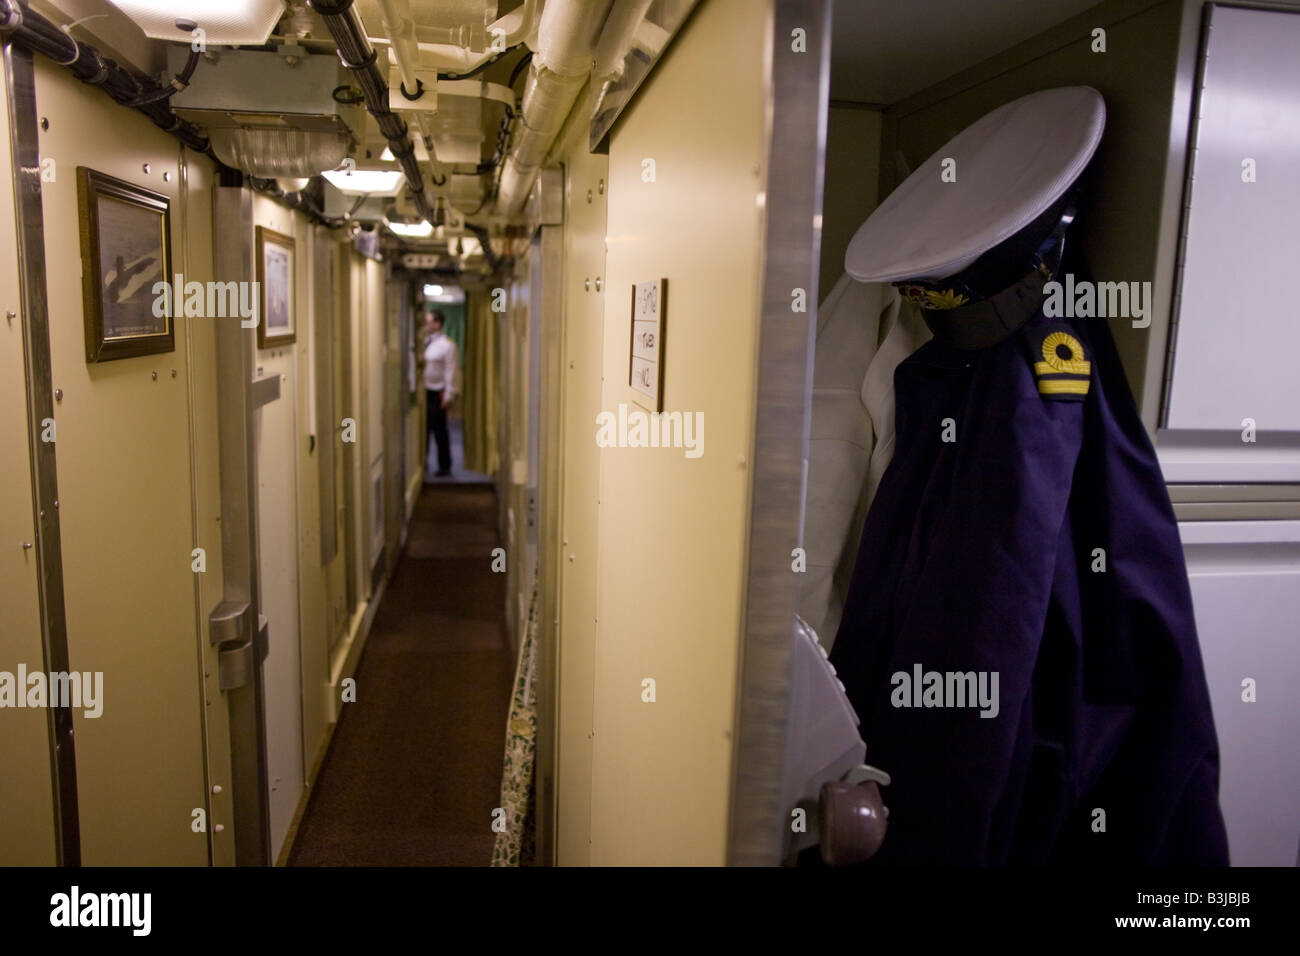 Naval Lieutenant's uniform belonging to a Weapons Engineering Officer aboard HMS Vigilant, a Vanguard class - Stock Image